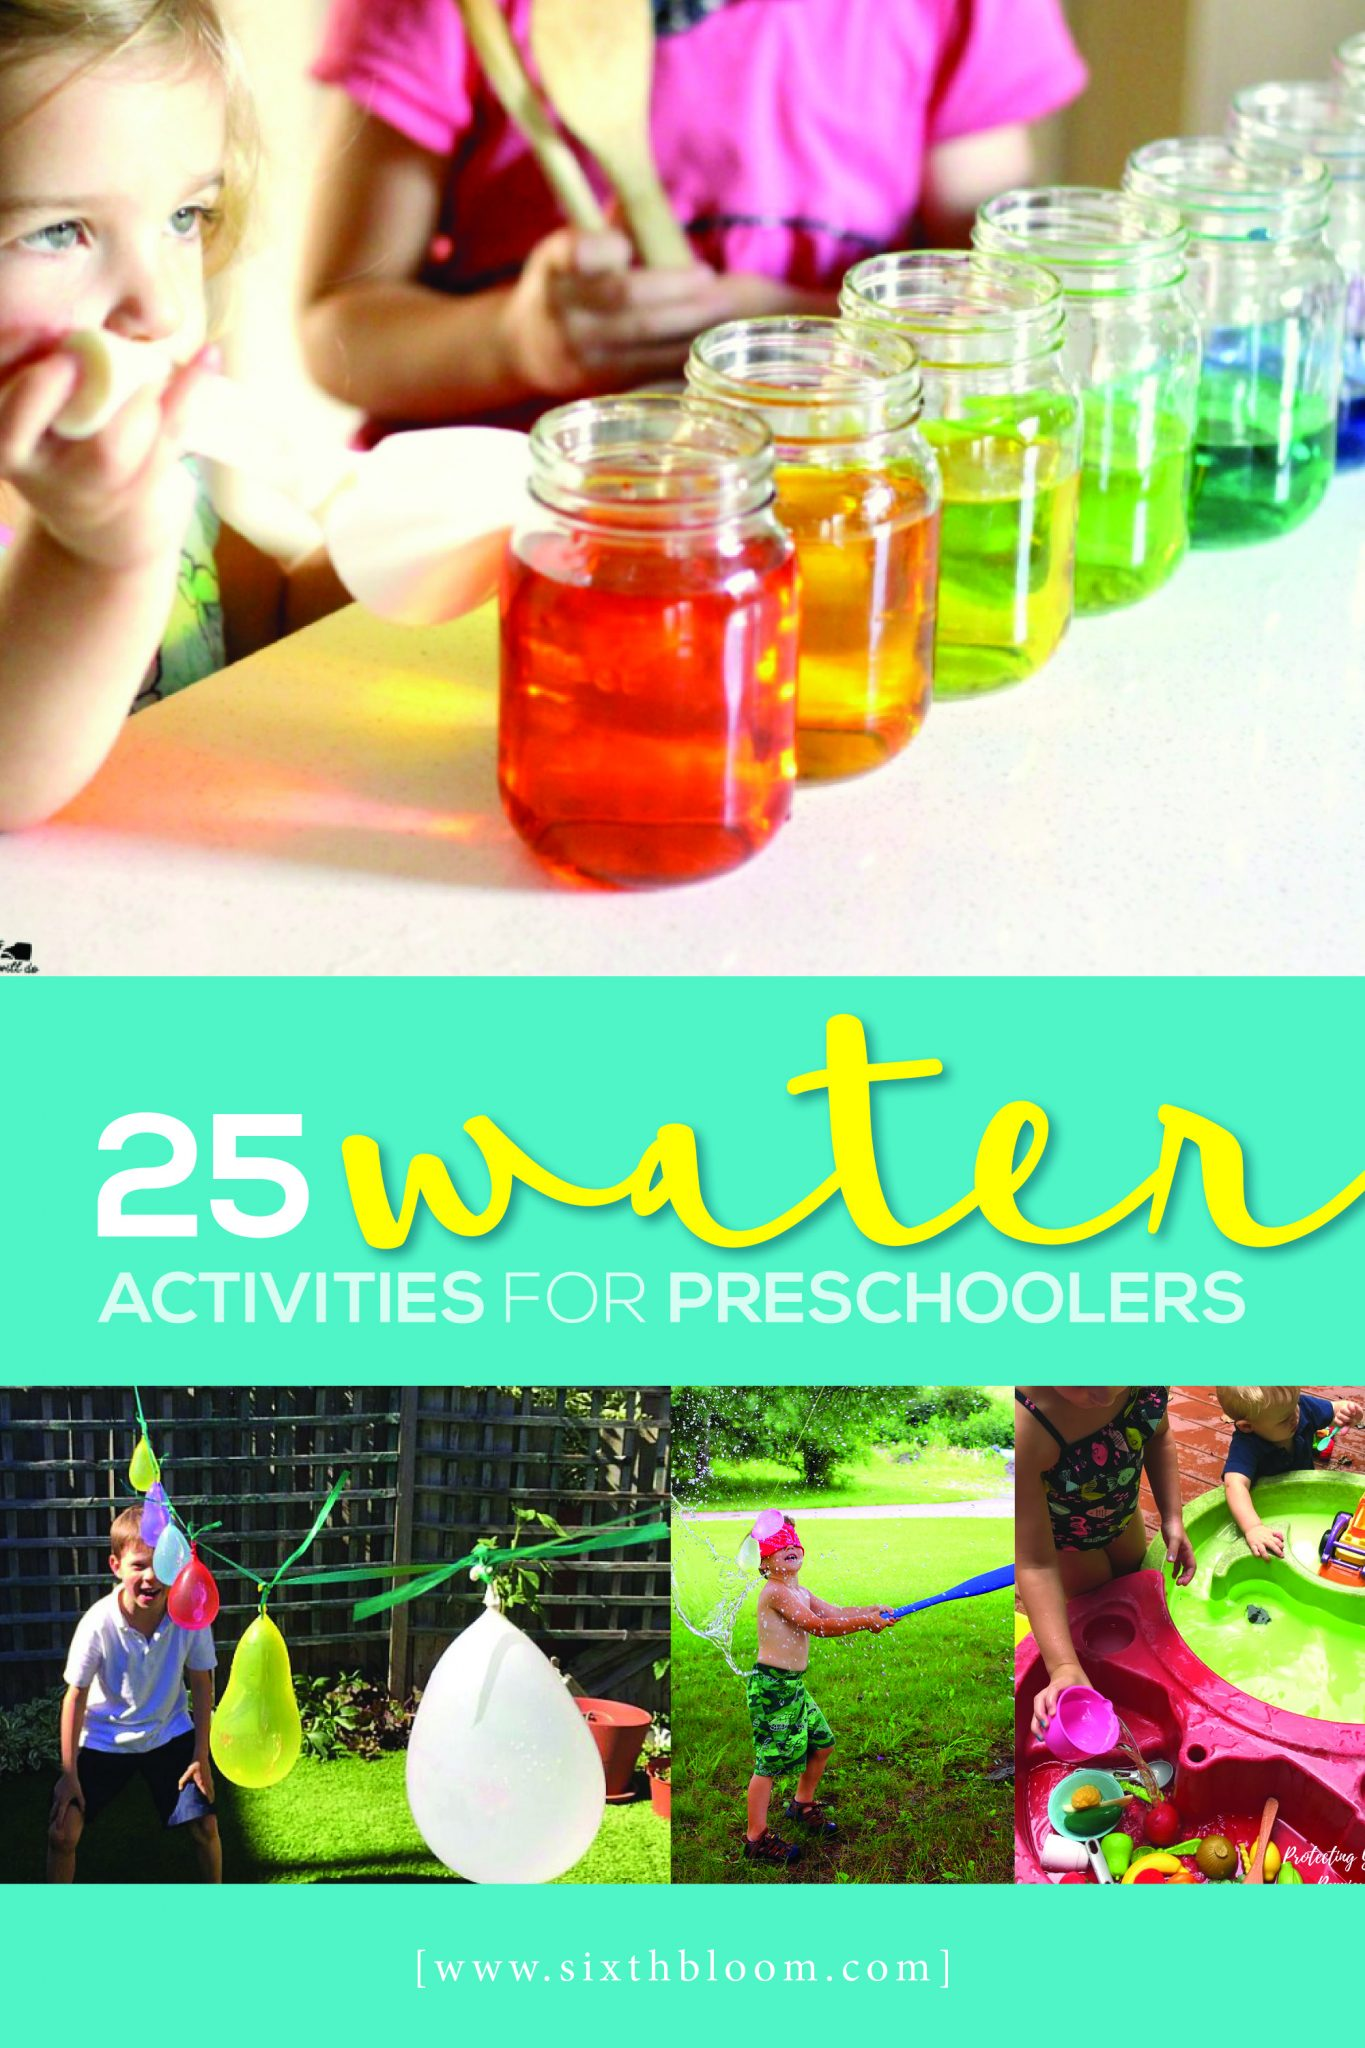 25 Water Activities For Preschoolers